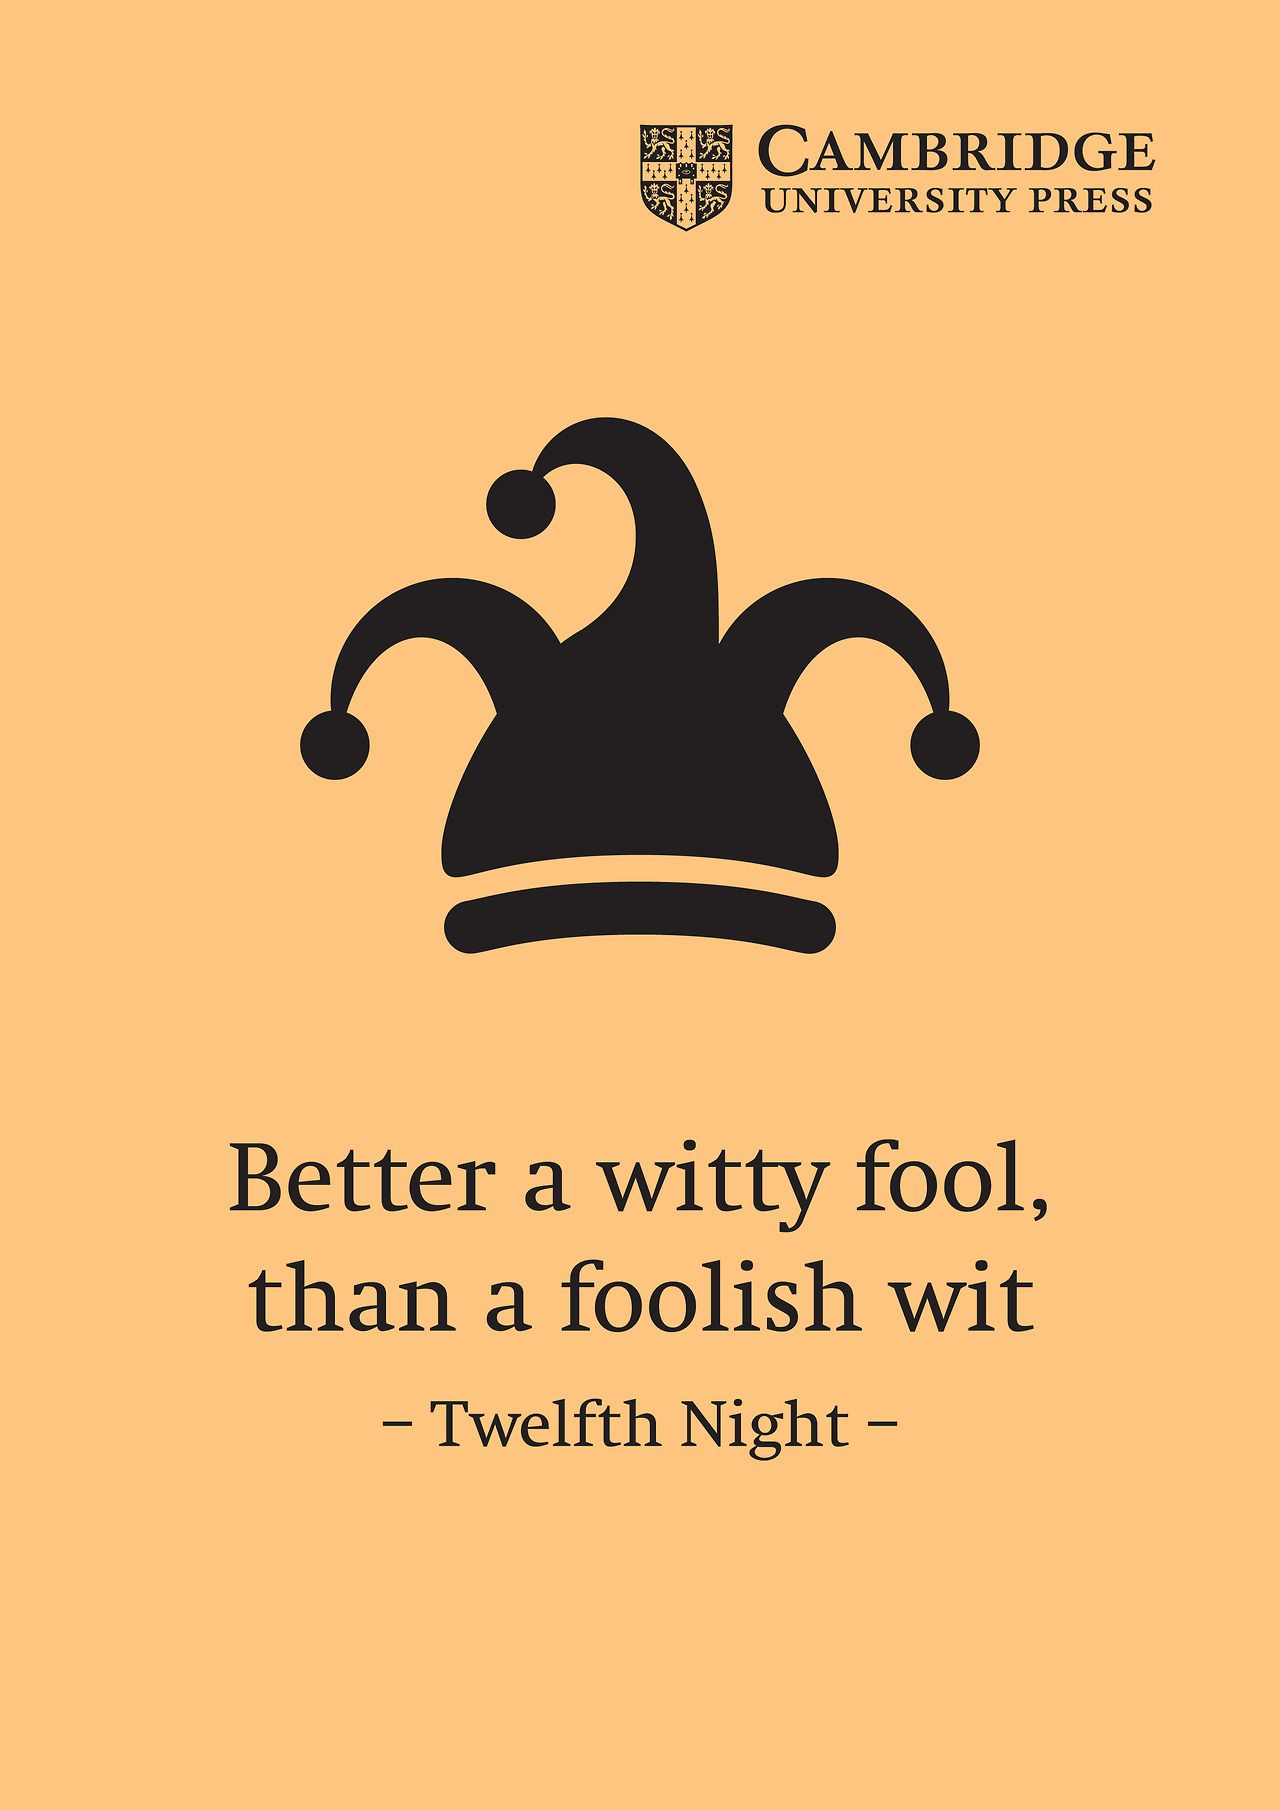 Shakespeare From Cambridge Twelfth Night Quotes Literary Quotes Funny Quotes